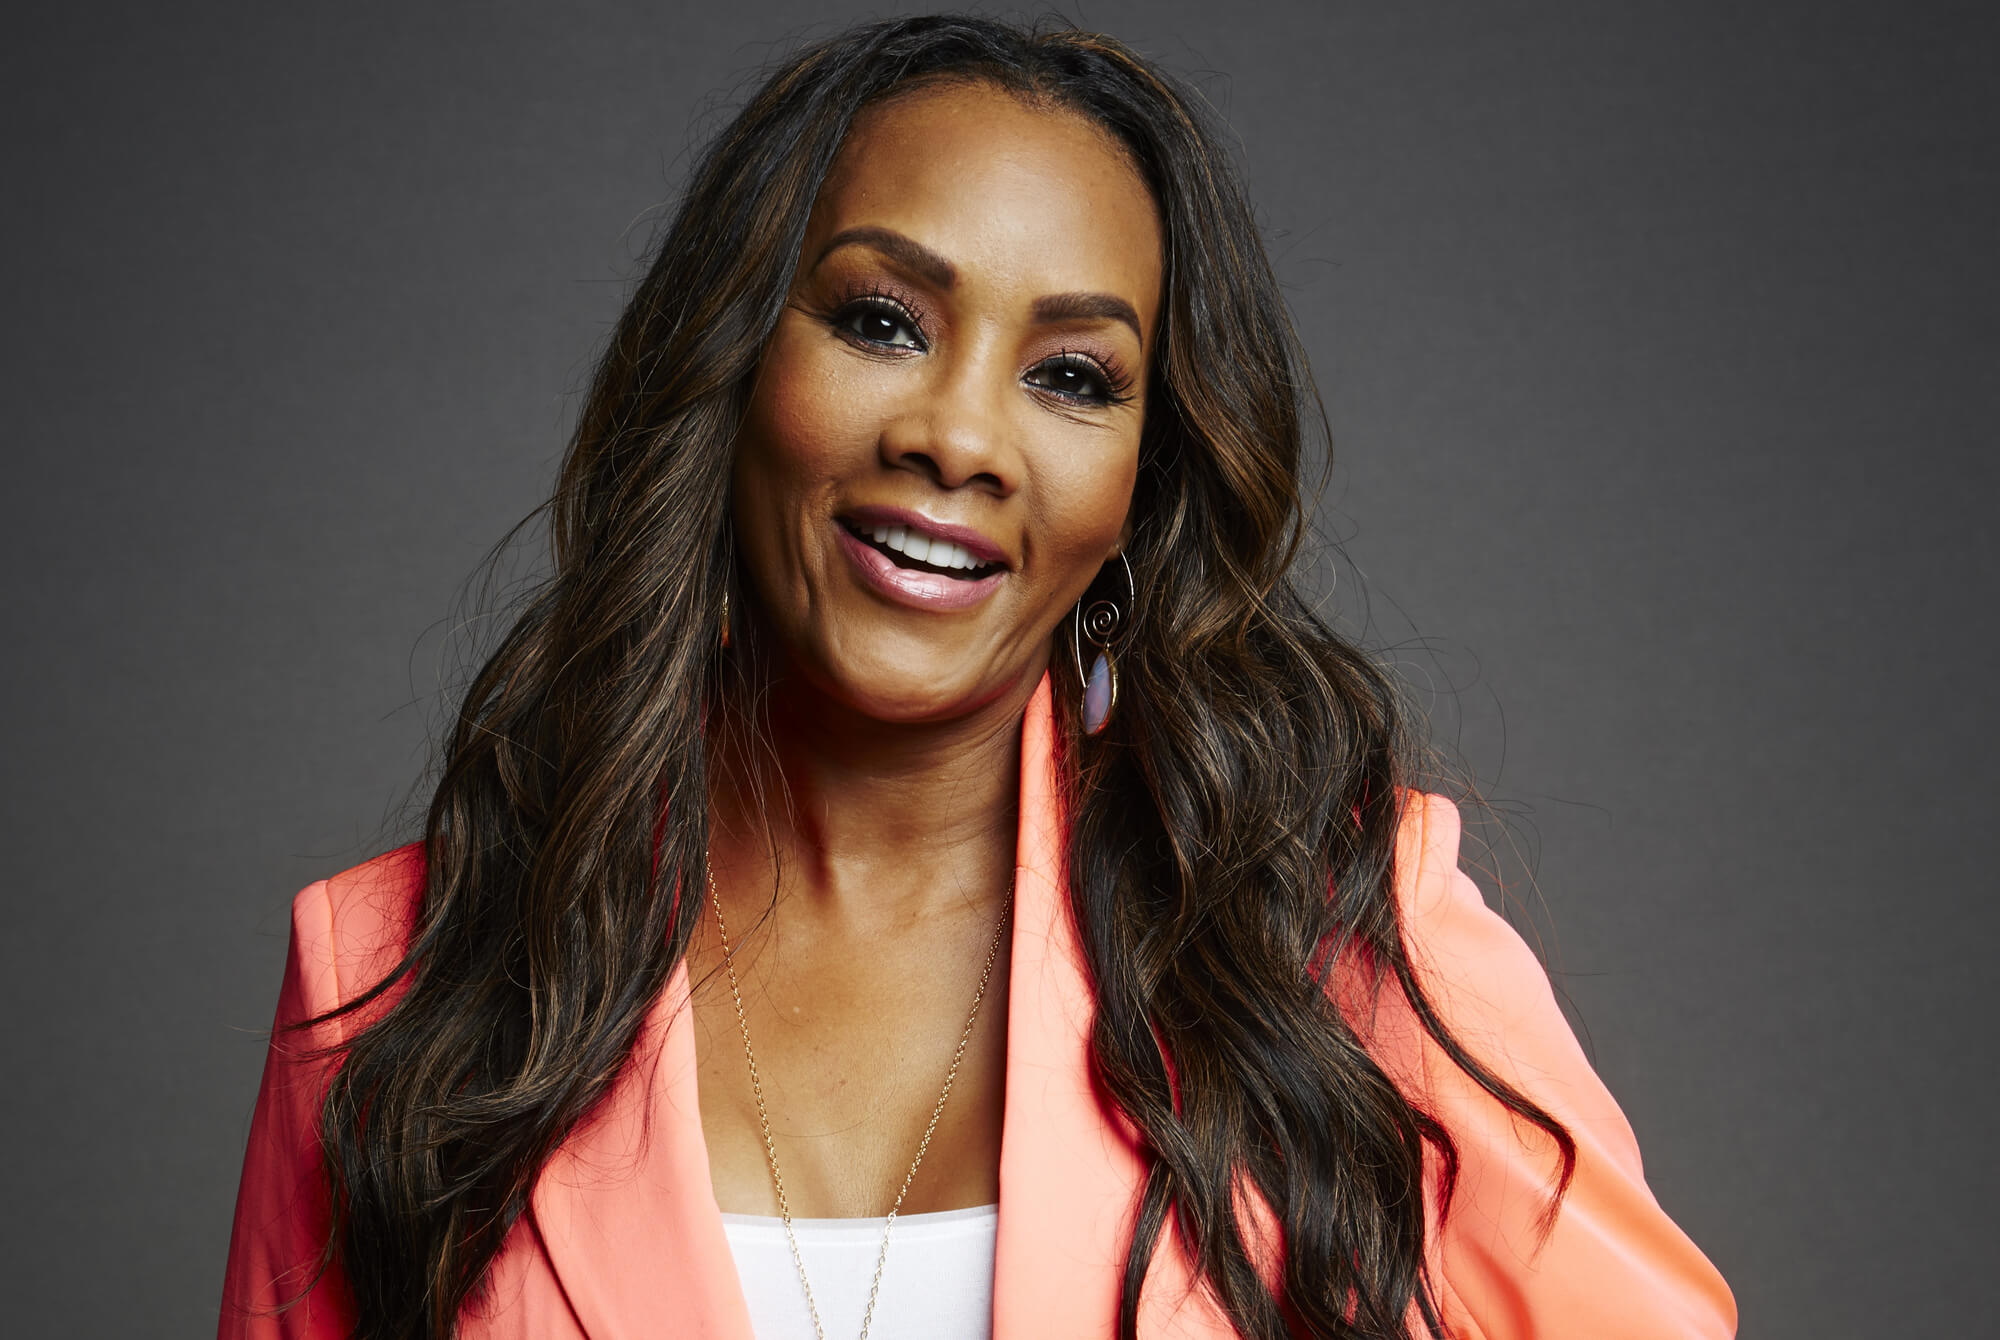 Vivica A. Fox hot photos